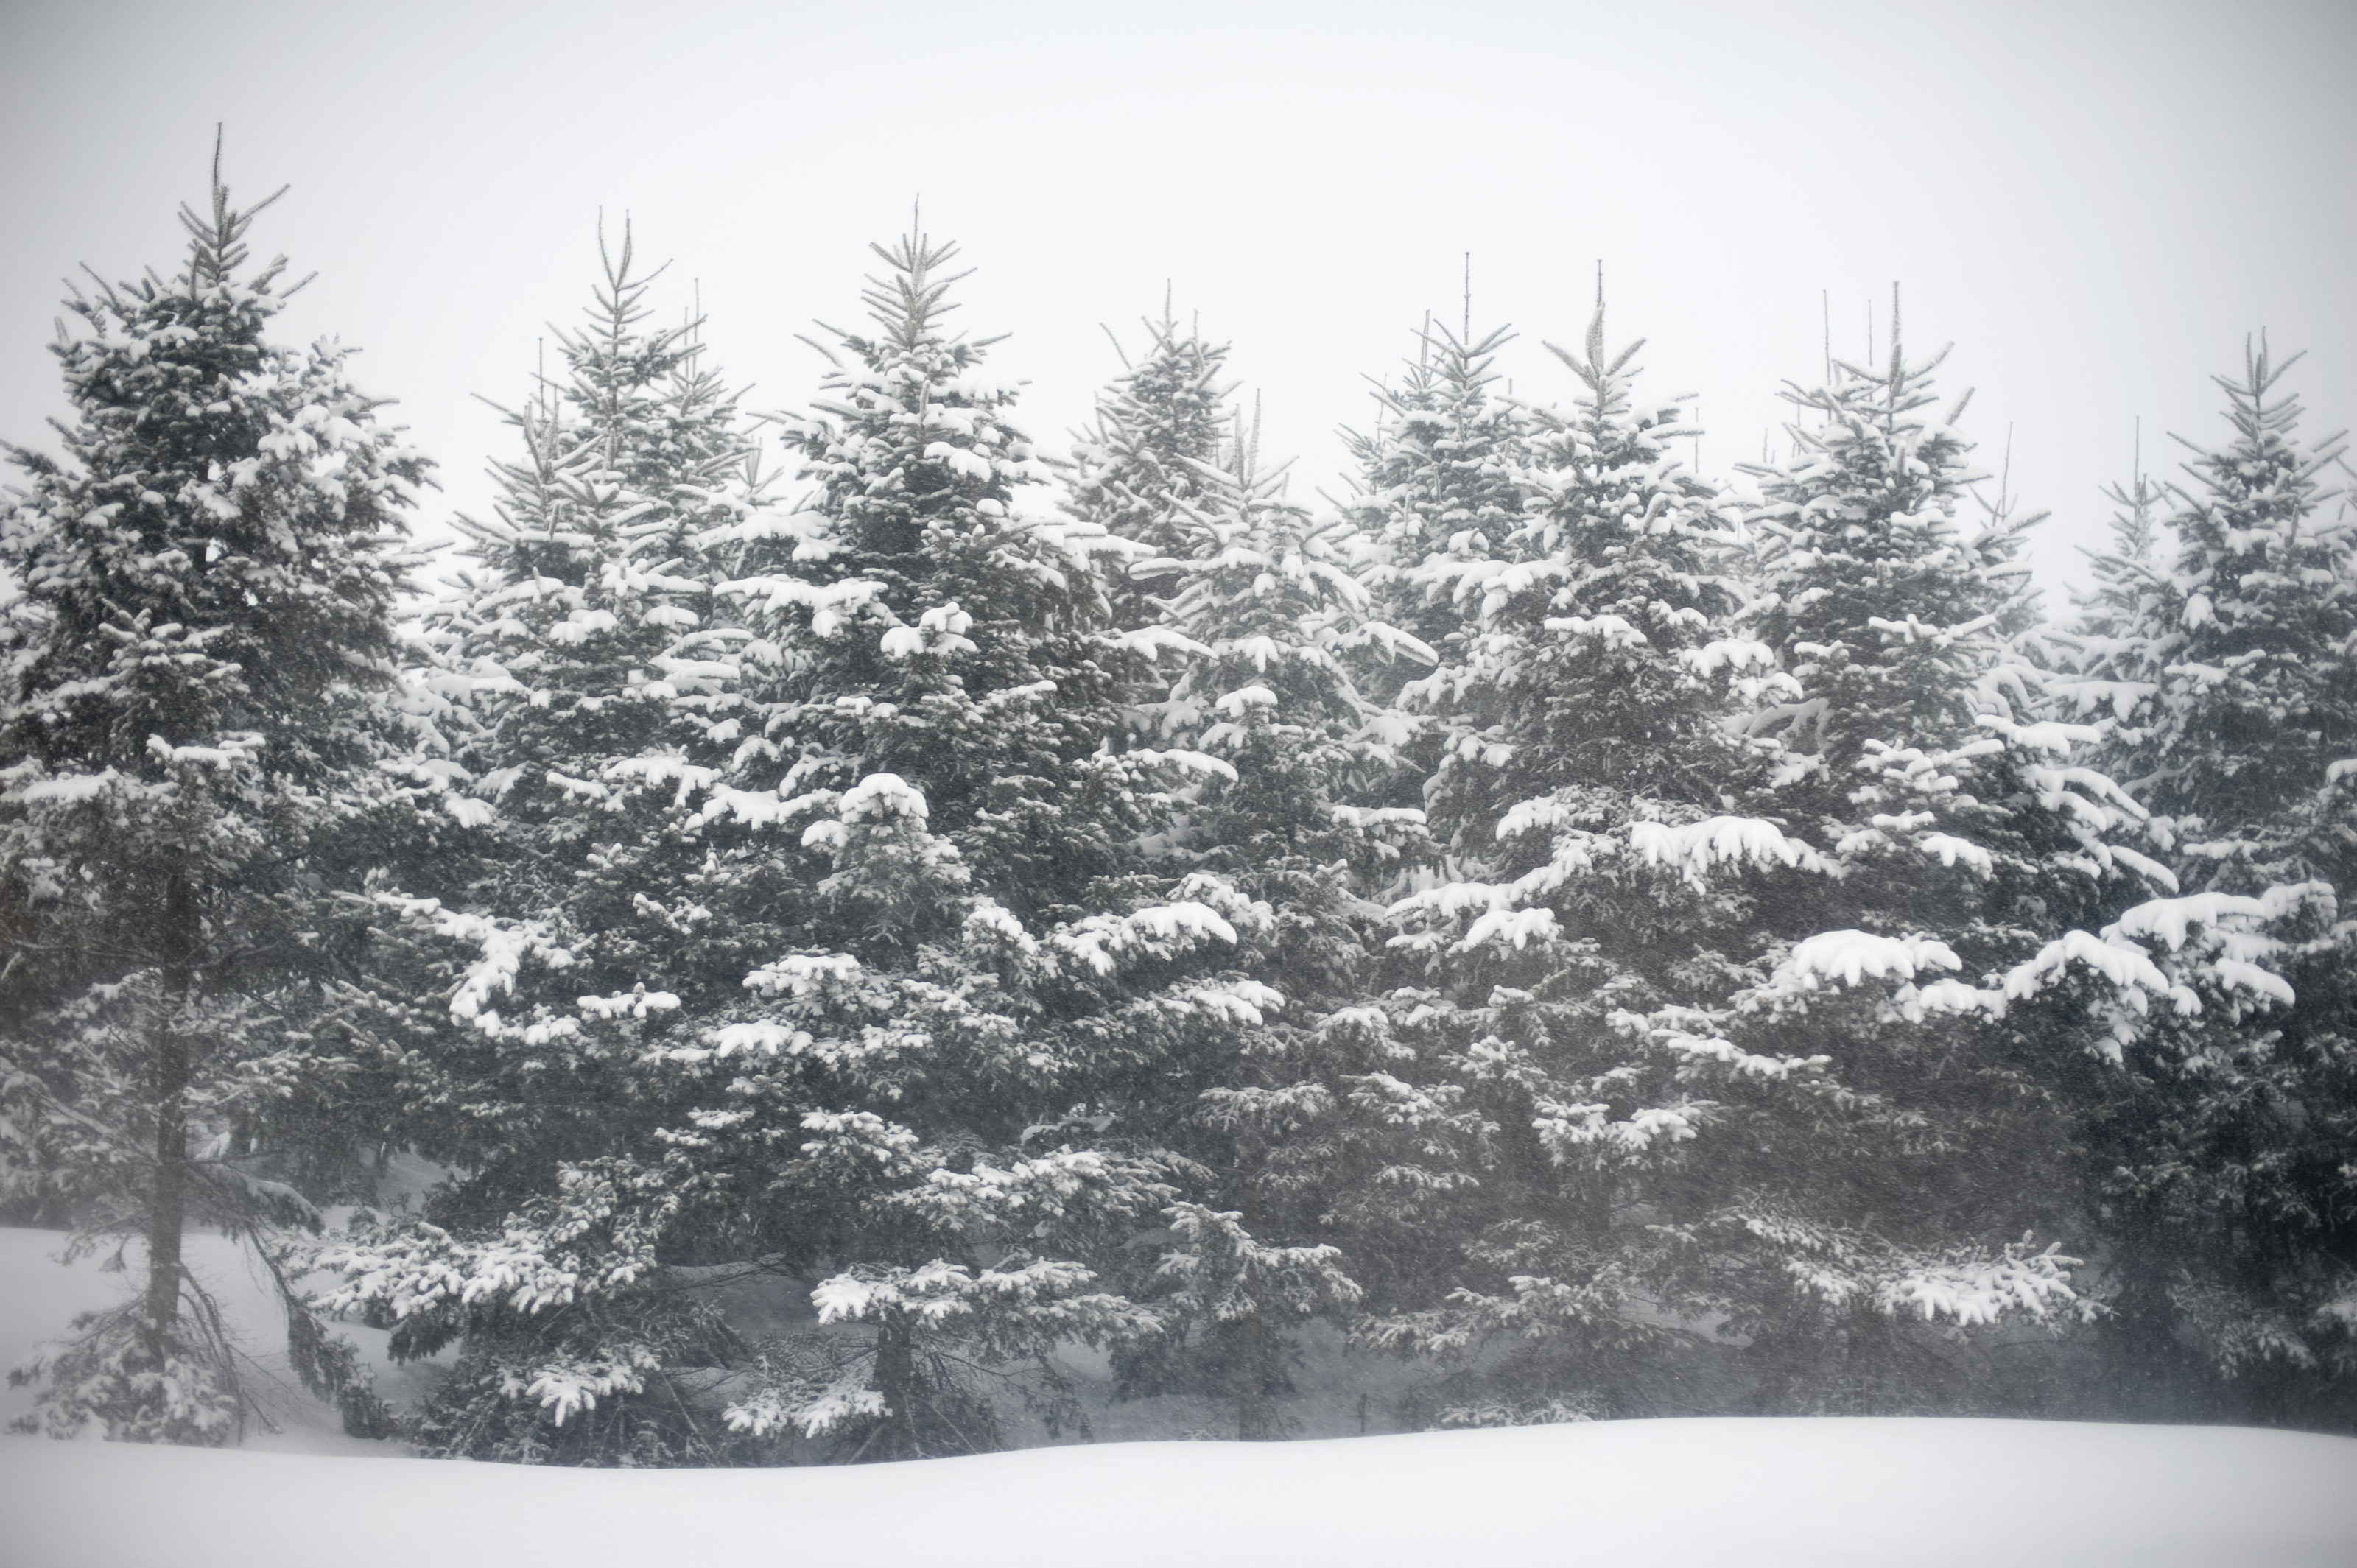 3200x2129 row of pine trees covered in falling snow